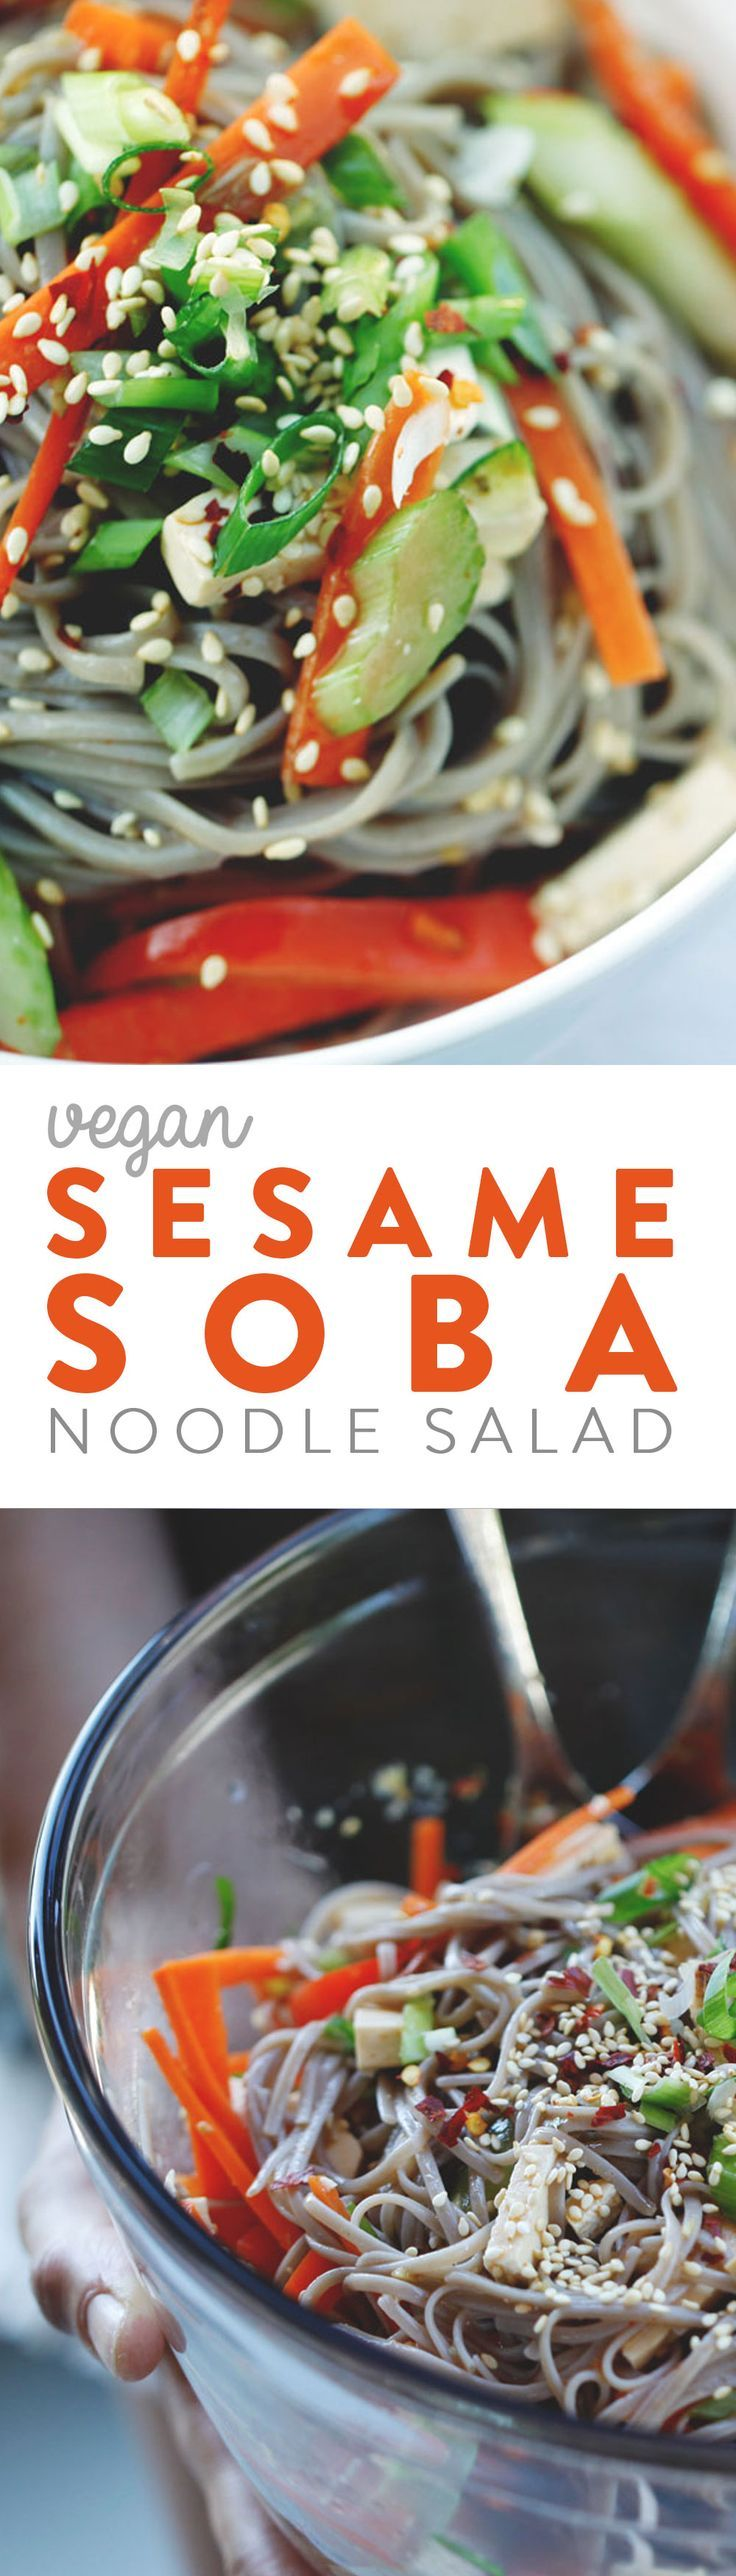 A satisfying soba noodle dish loaded with fresh vegetables, and tossed in a savory sesame ginger sauce. Quick to prepare and tastes great. The buckwheat noodles even keep well for lunch the next day. Vegan & Gluten Free.